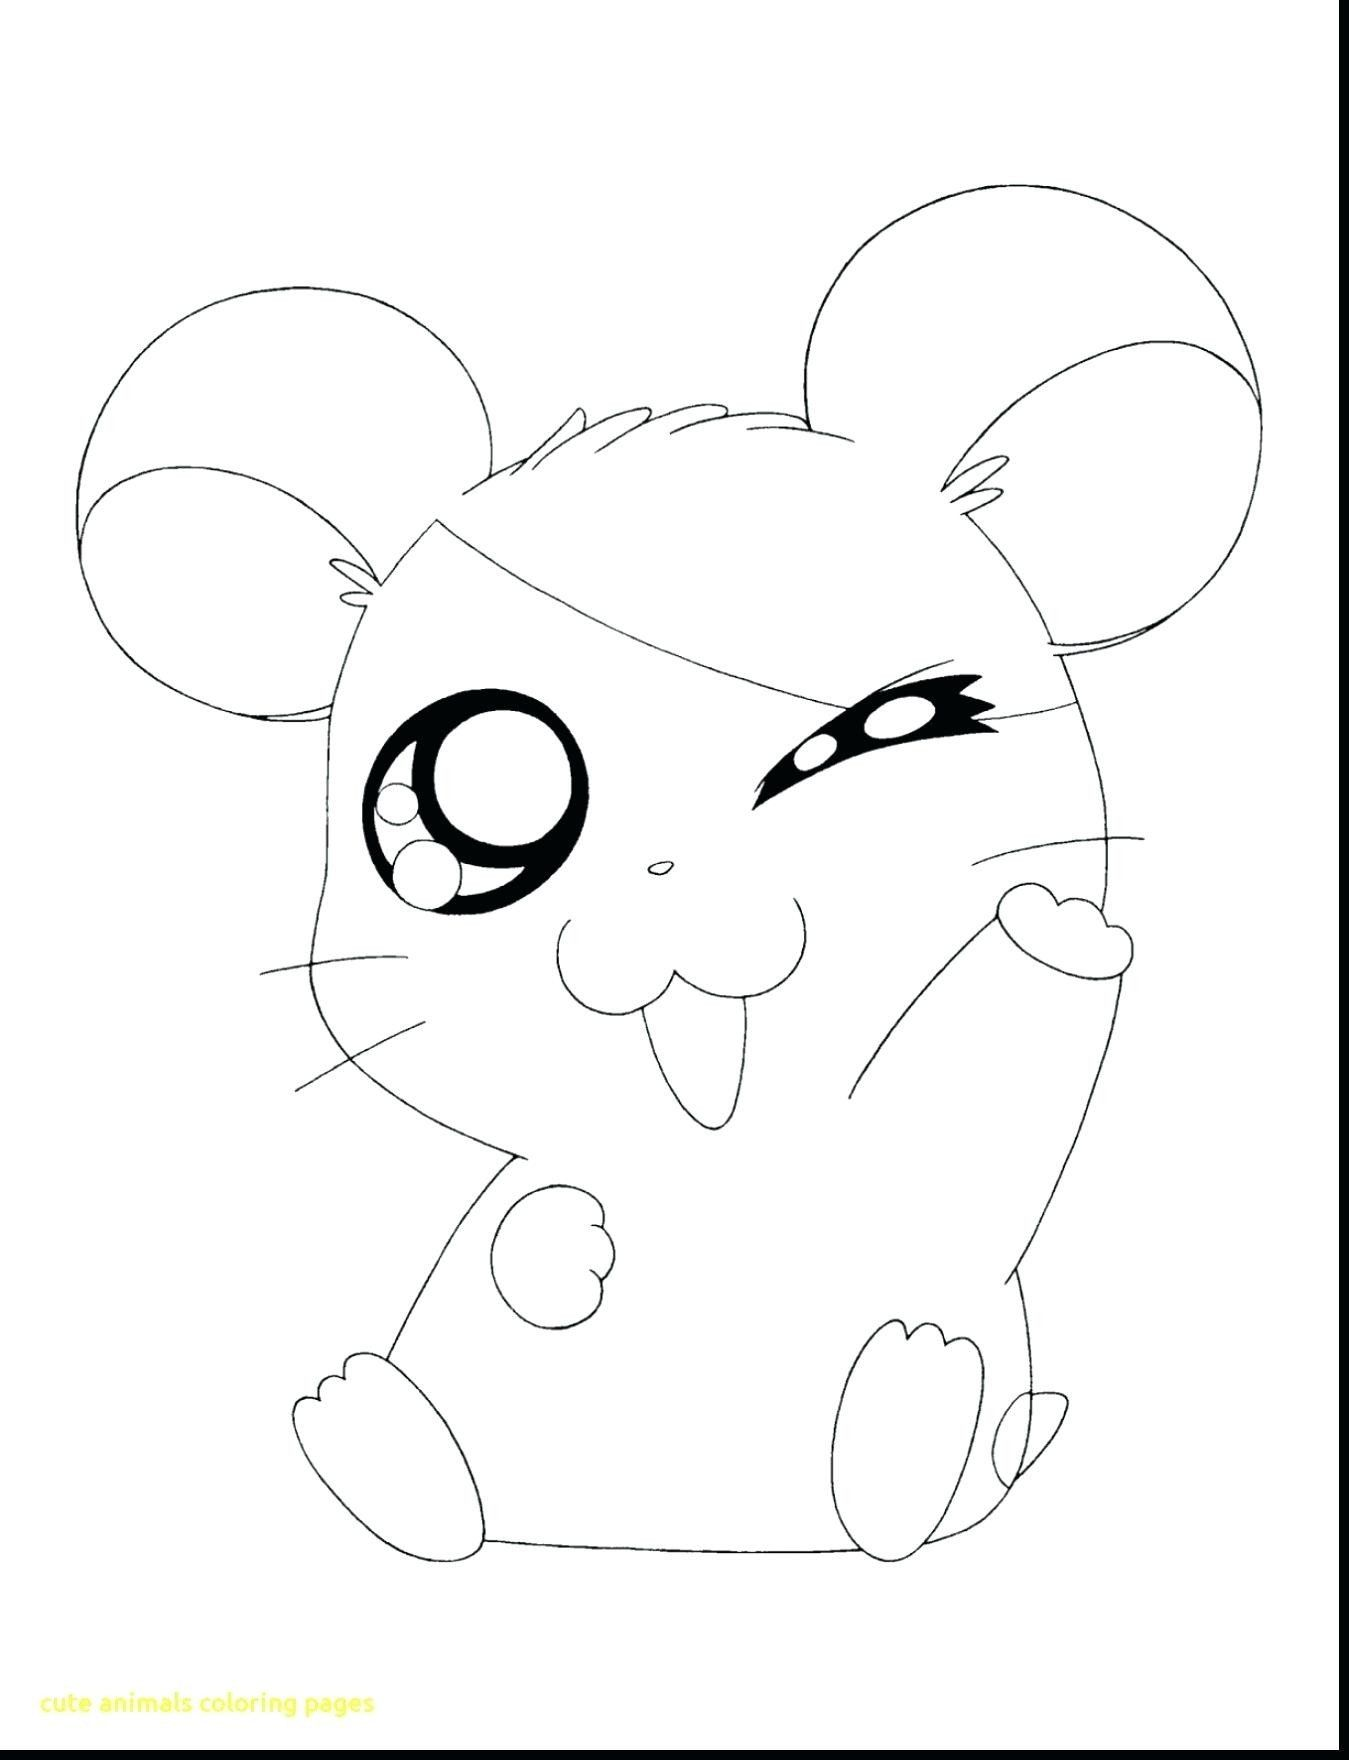 Coloring Pages Baby Animals Coloring Pages Cute Baby Animal Coloring Pages To Print Dinosaur Coloring Pages Squirrel Coloring Page Puppy Coloring Pages